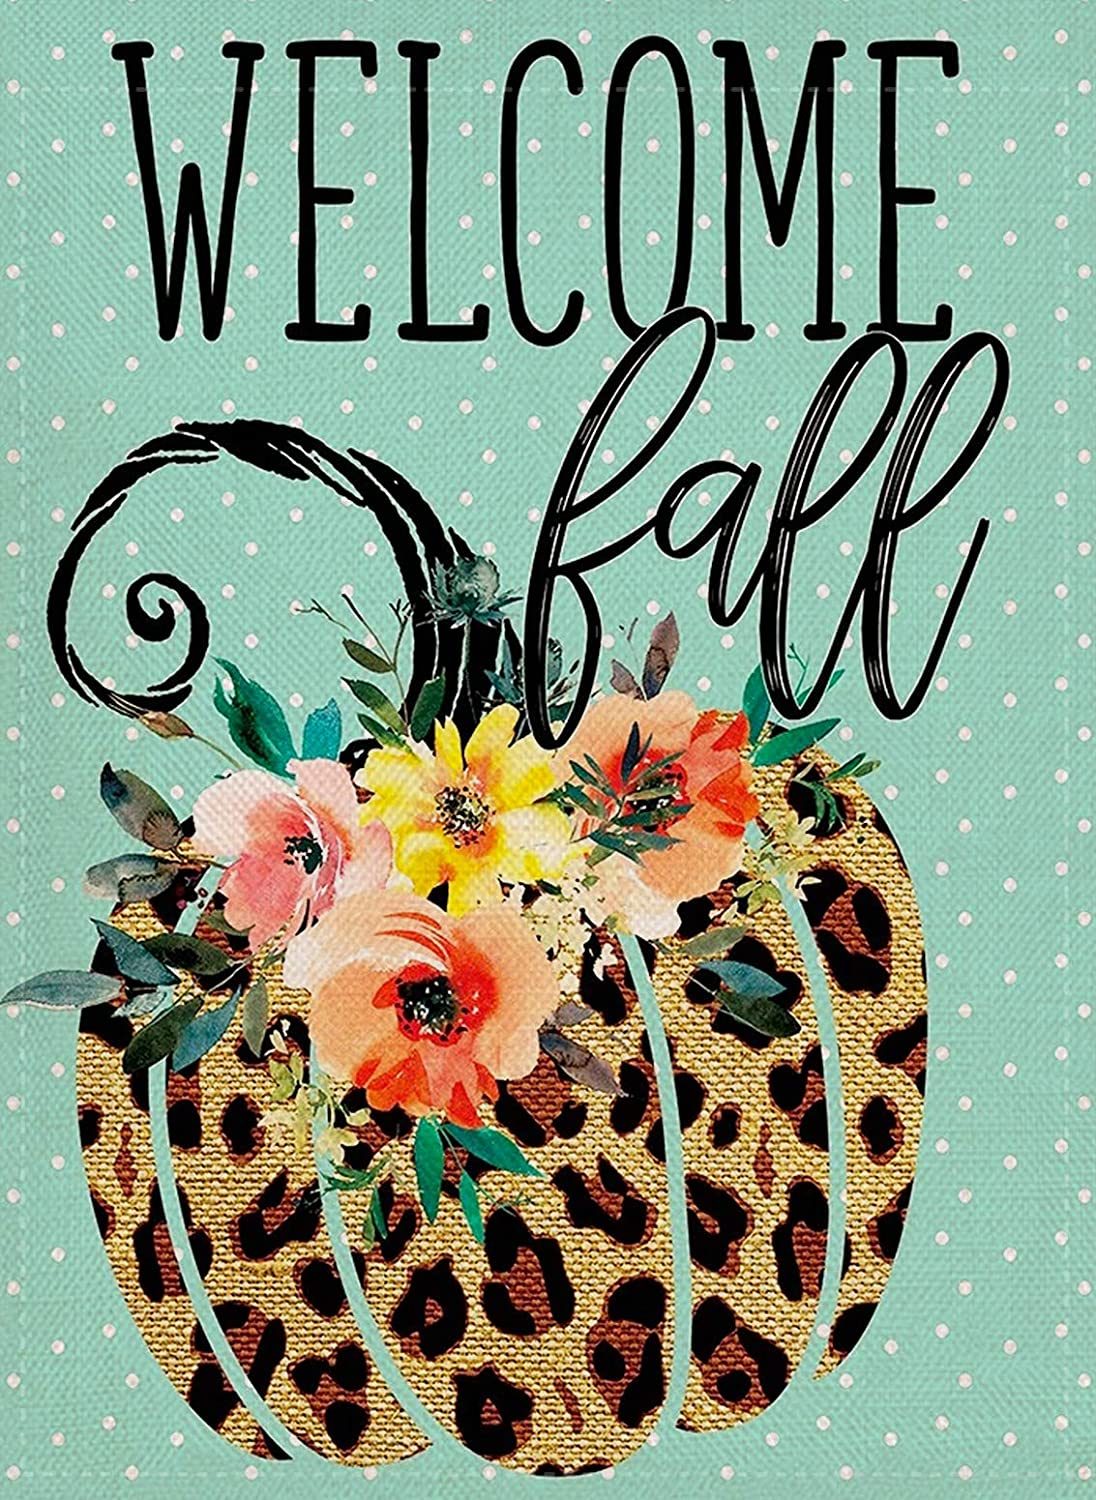 Furiaz Welcome Fall Leopard Pumpkin Garden Flag Watercolor Flowers House Yard Outdoor Decorative Small Flag, Autumn Outside Decorations Seasonal Mint Green Home Flag Decor Double Sided 12 x 18